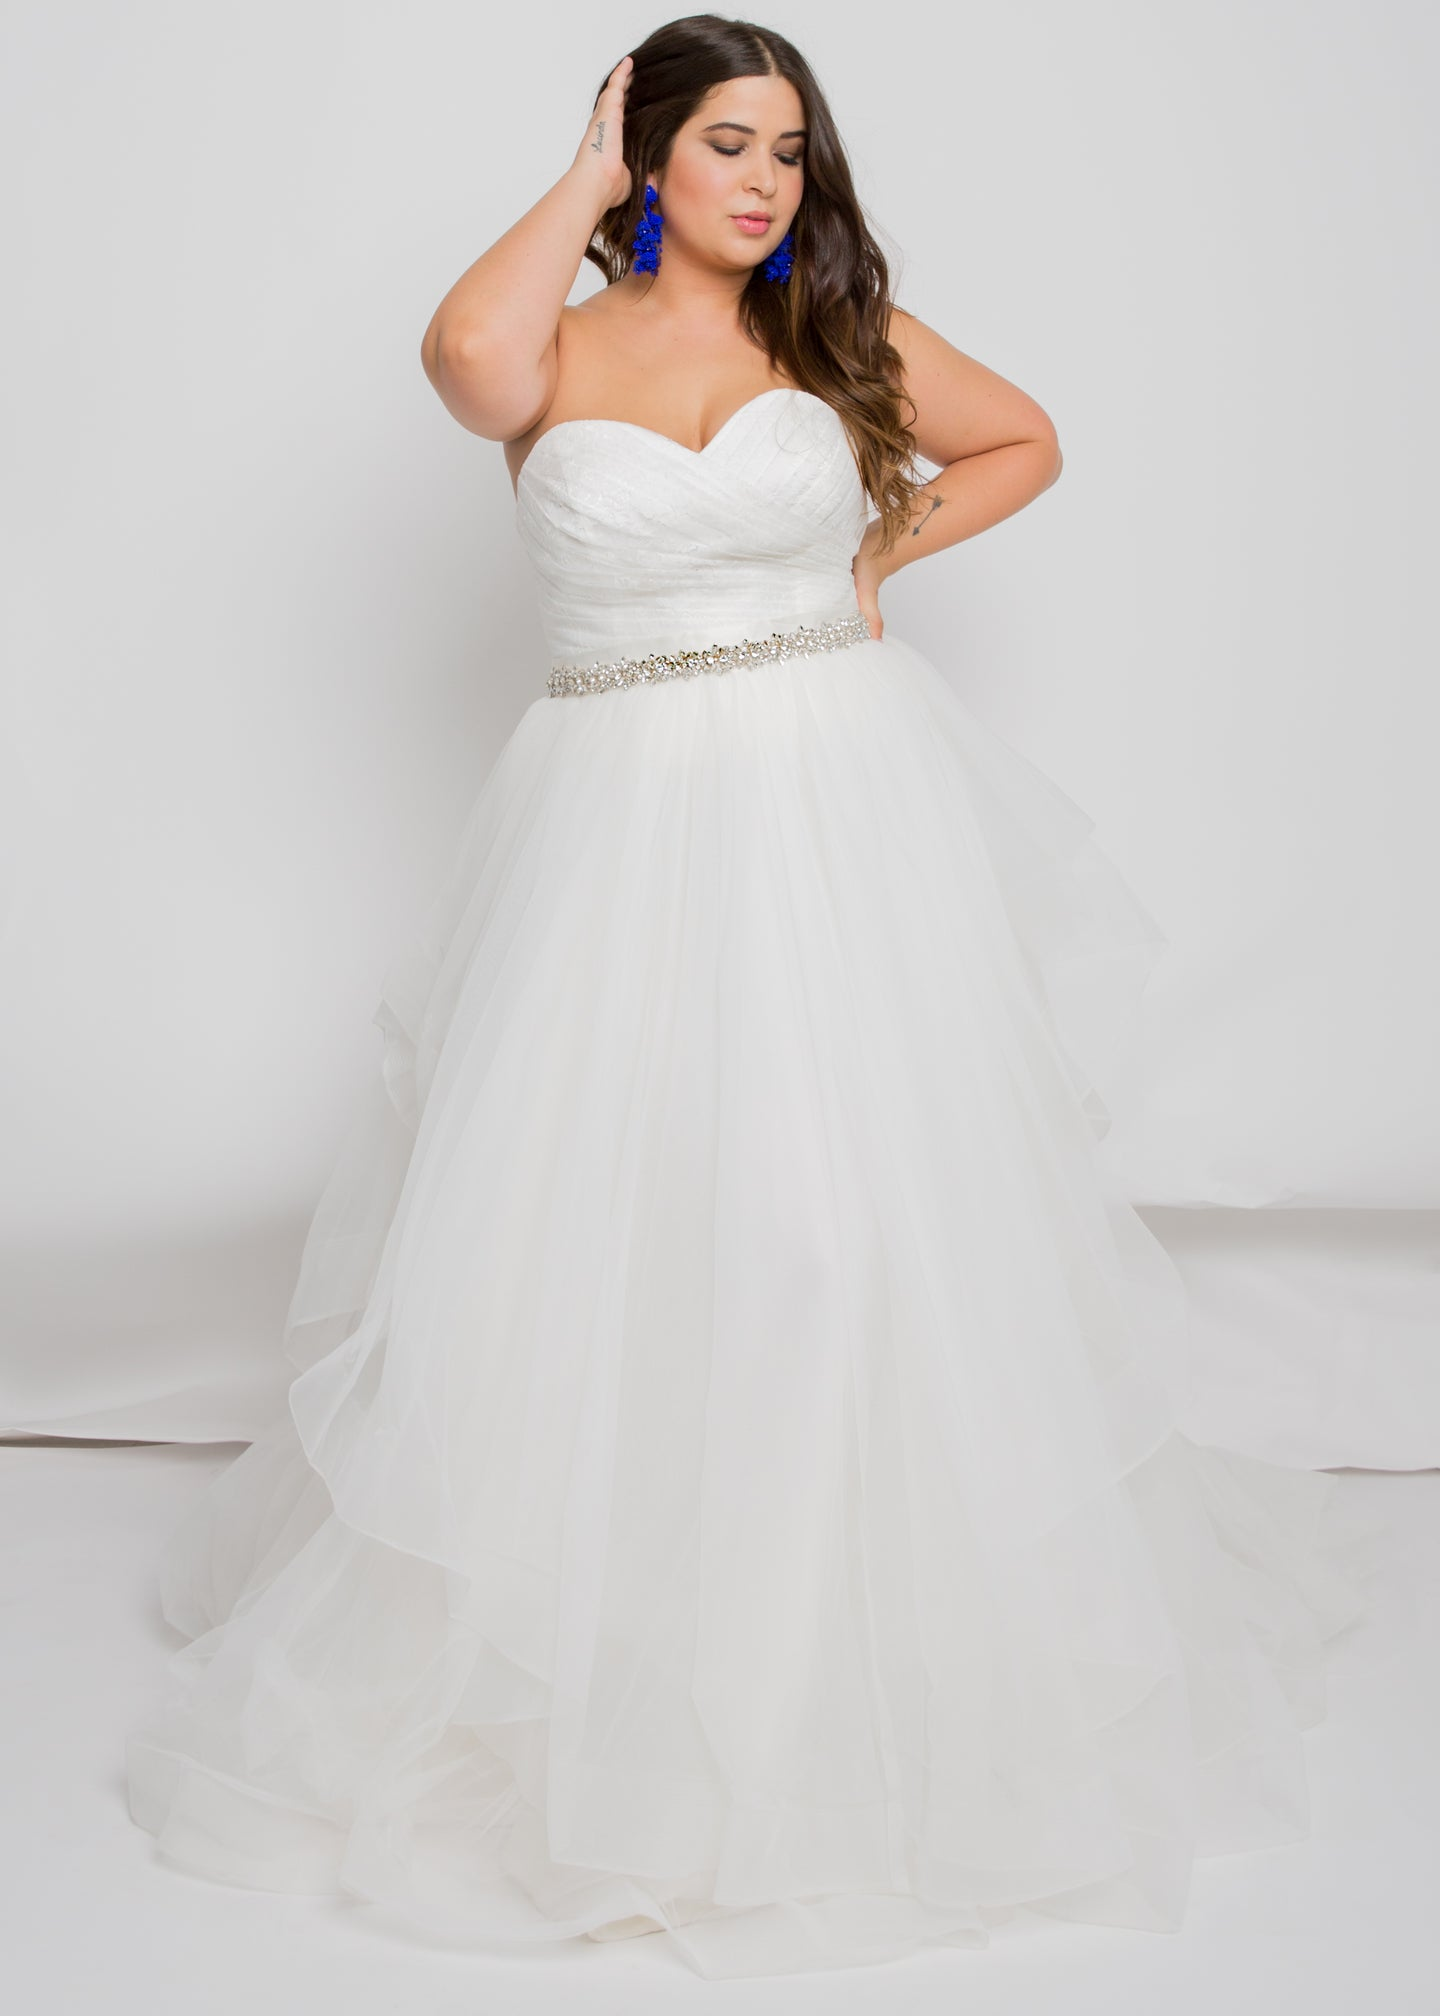 Gorgeous bridal gowns for all body shapes: plus size, curvy, or petite brides. Try on our wedding dresses at home. Size 0-30. Comfortable. Convenient. Fun. Lace or satin. Mermaid or A-line. The textures of the lace and tulle play together beautifully, while the pleating of the top and the layers of the skirt elevate the combination even further. This may at first appear as a simple sweetheart top, but the pleated lace detailing makes it much more than that.